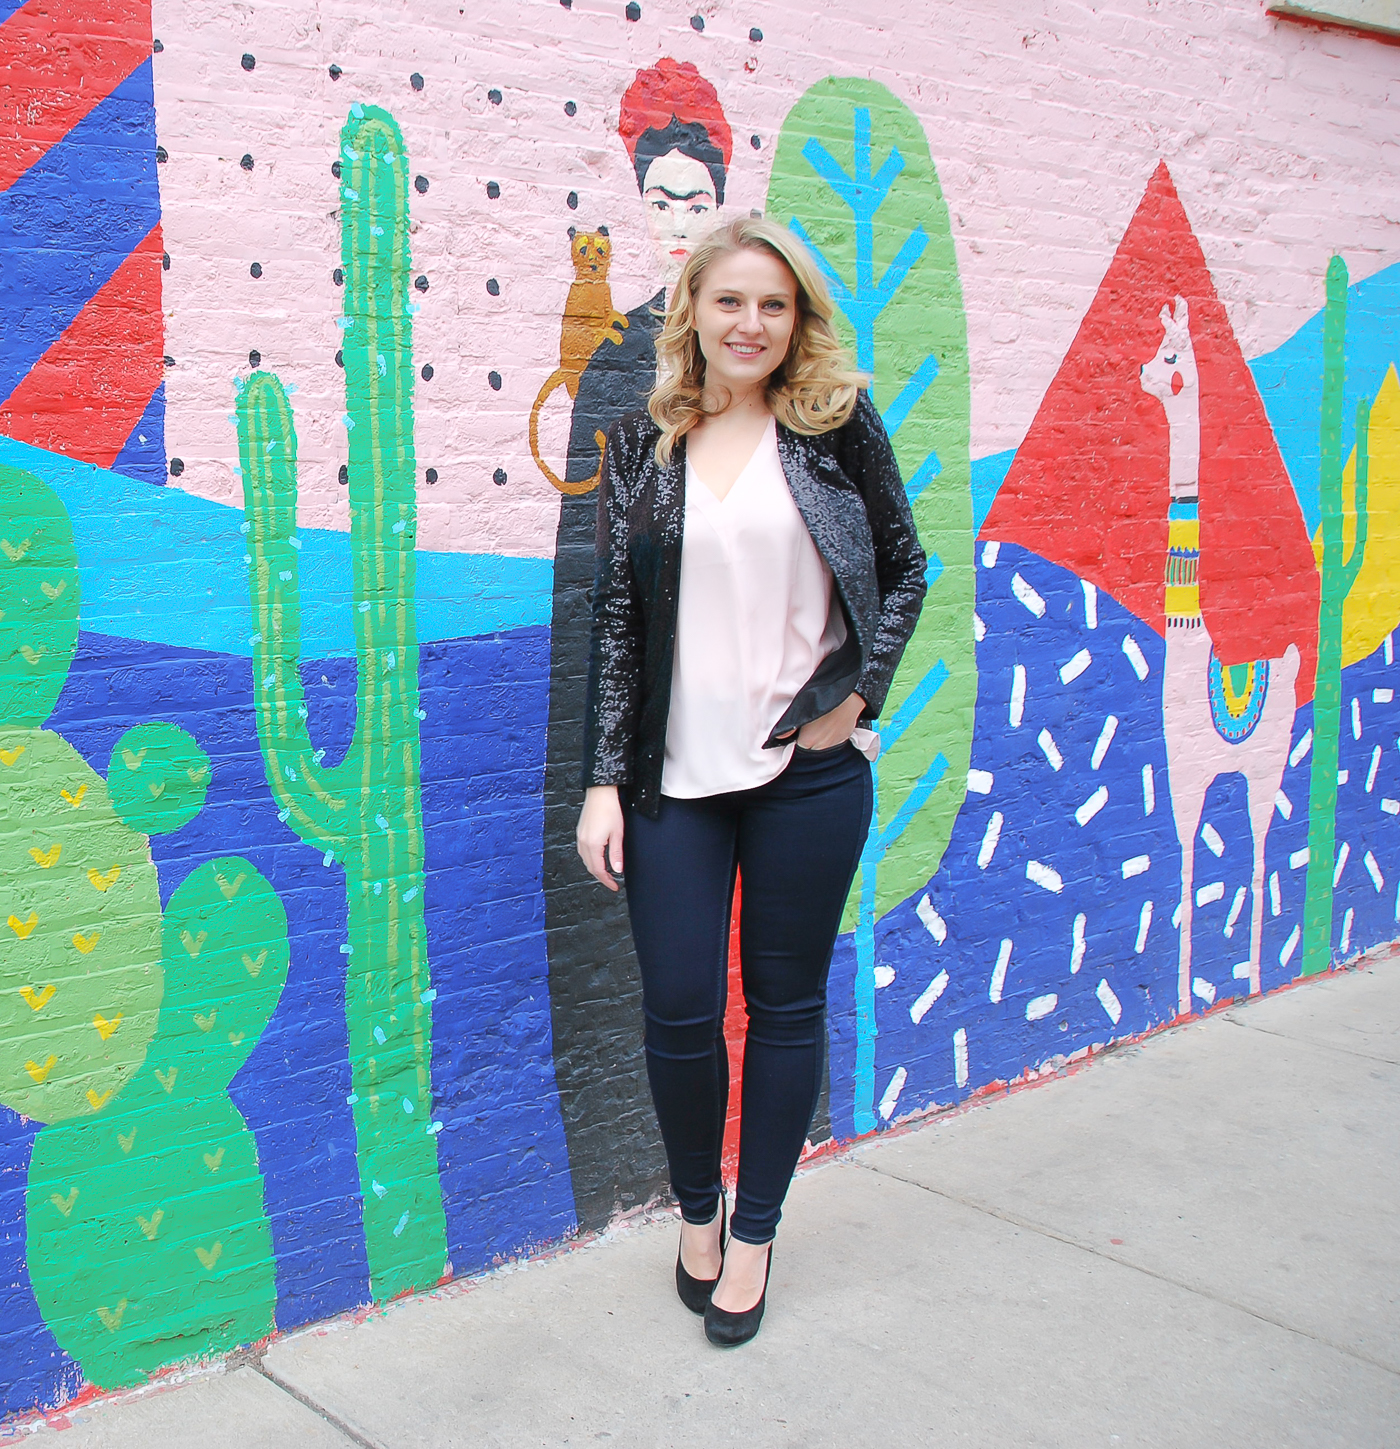 A simple outfit to wear out this month including a sparkle jacket and jeans